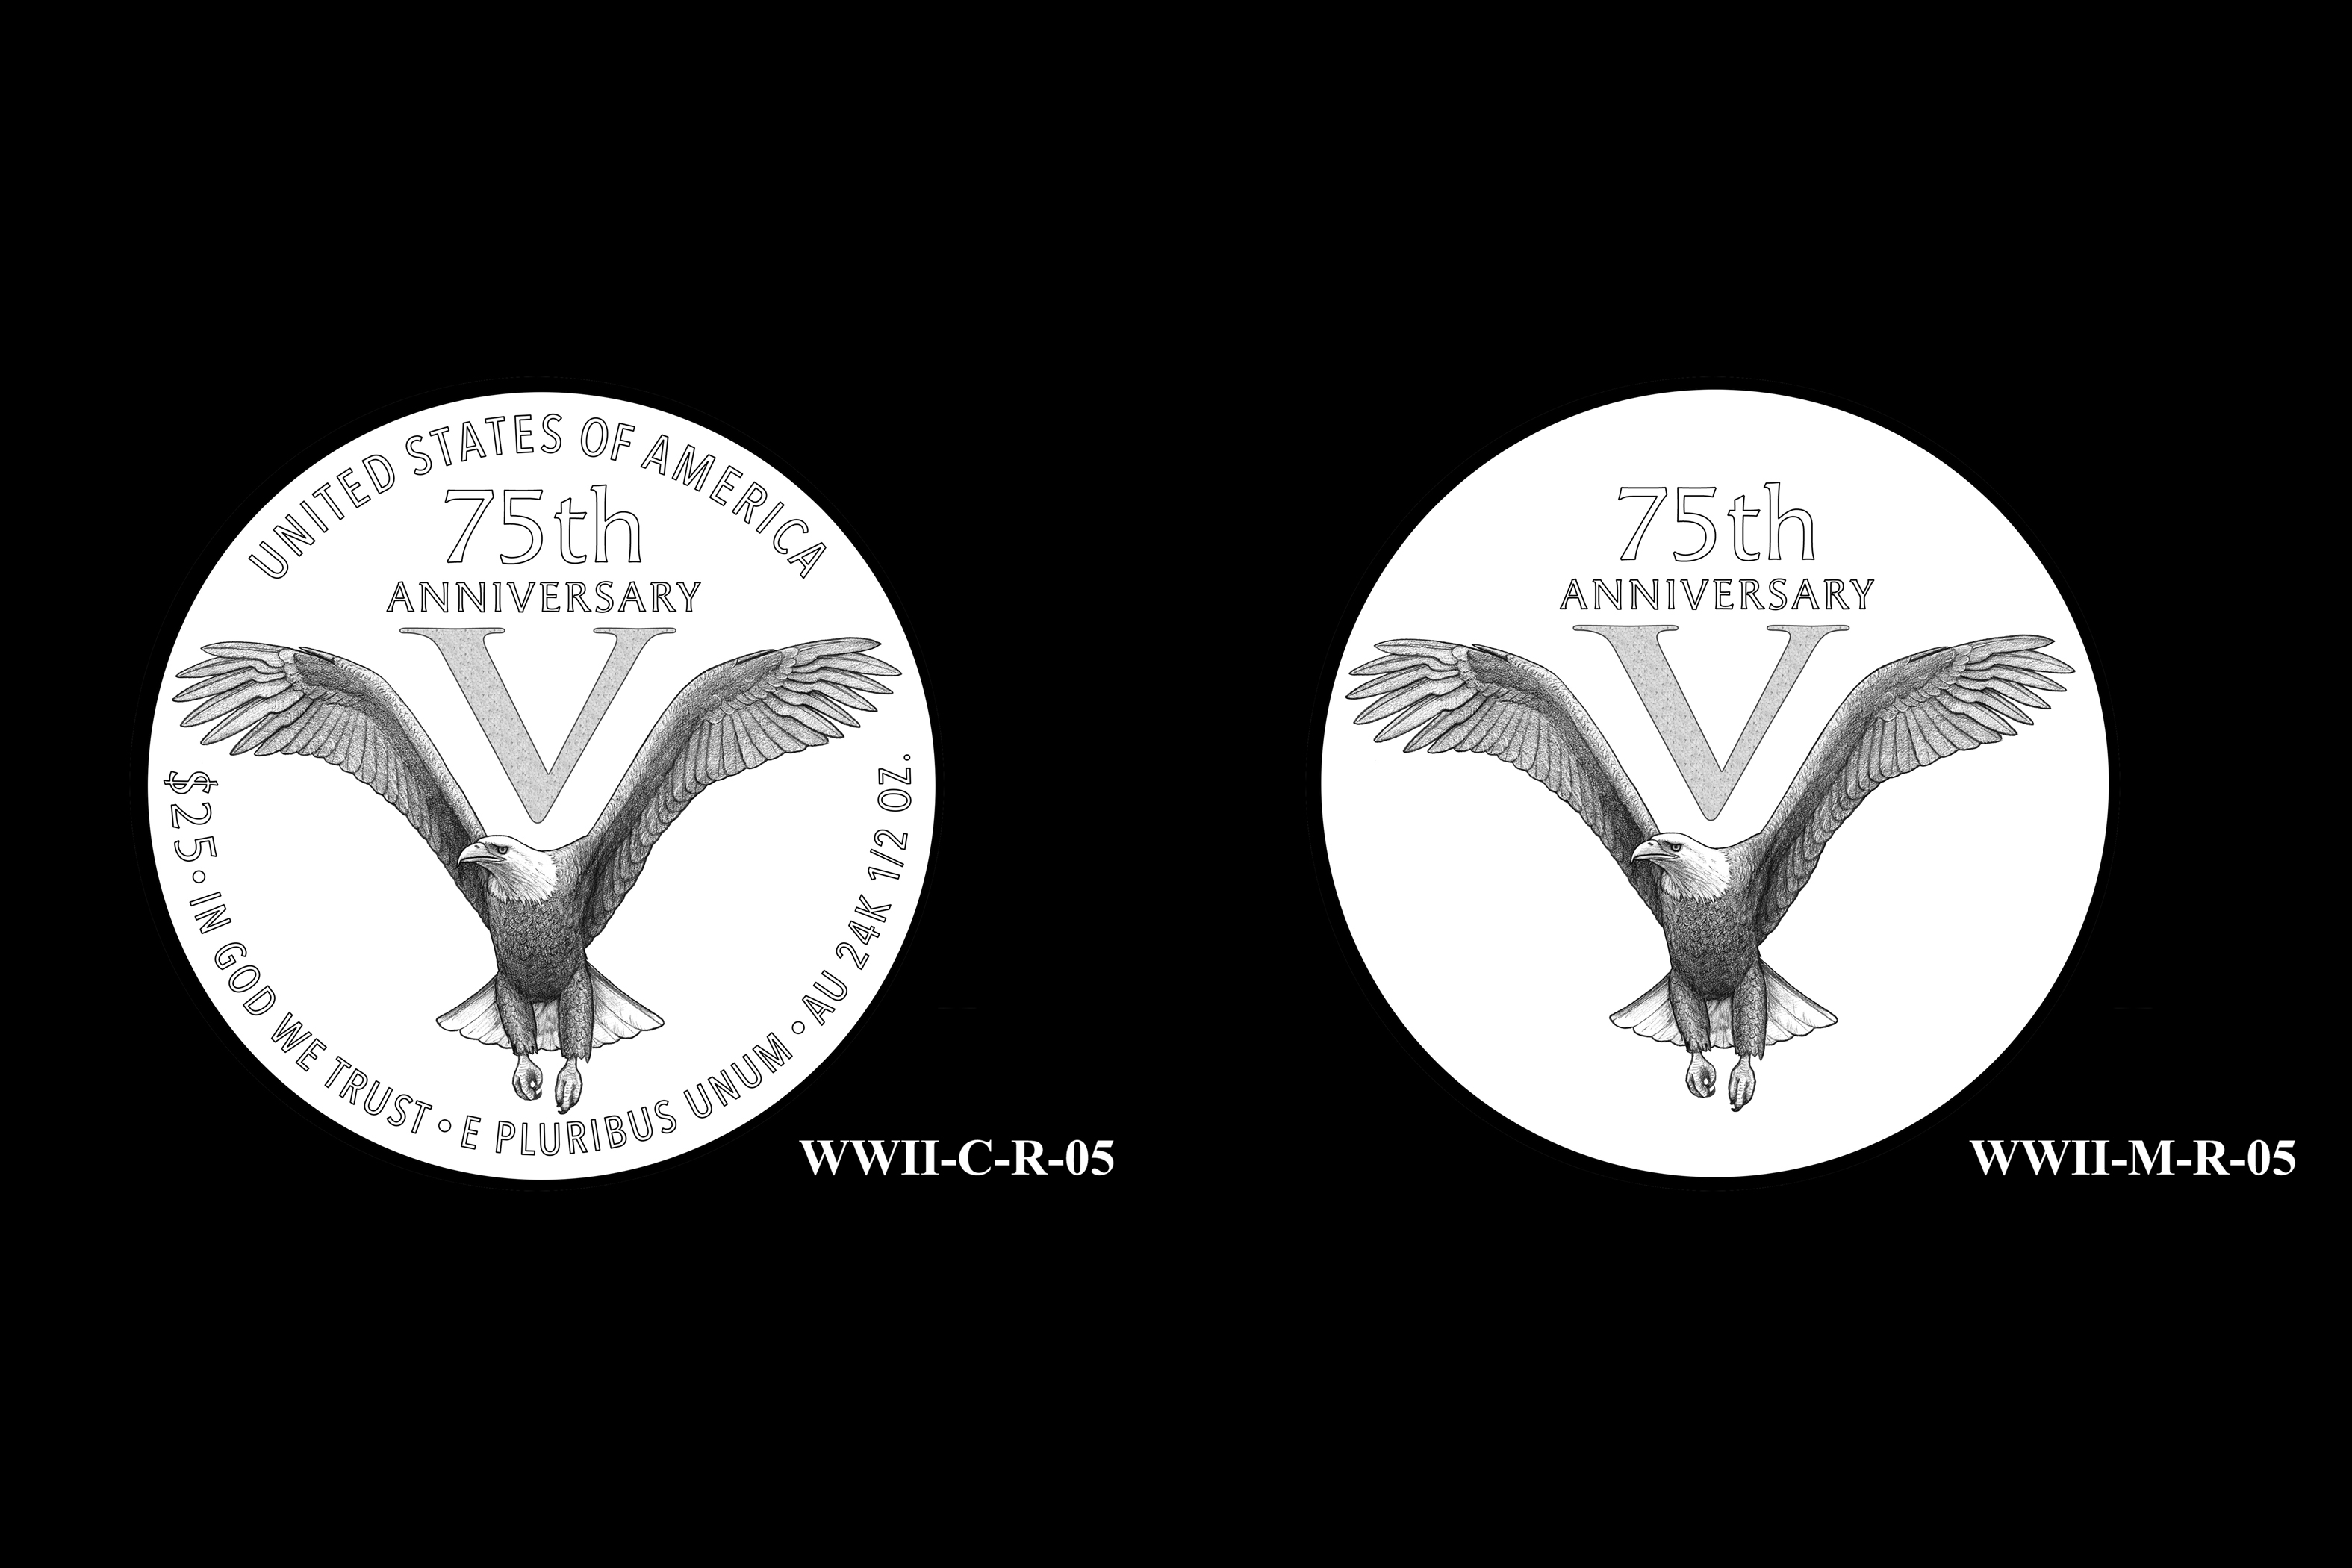 WWII-C-R-05 and WWII-M-R-05 -- End of World War II 75th Anniversary Program - Reverse